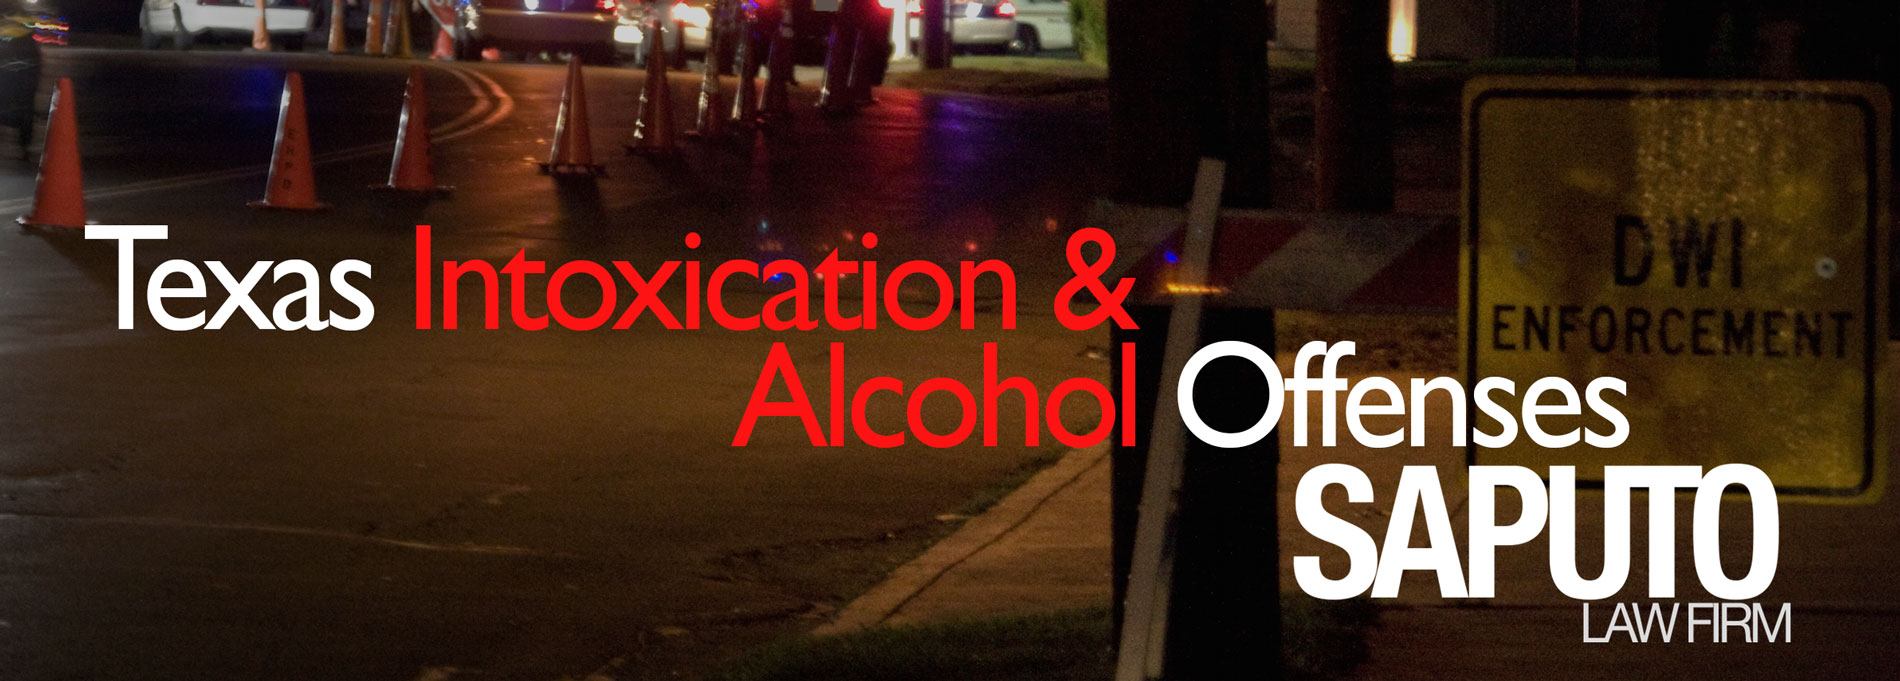 Intoxication and Alcohol Offenses Graphic